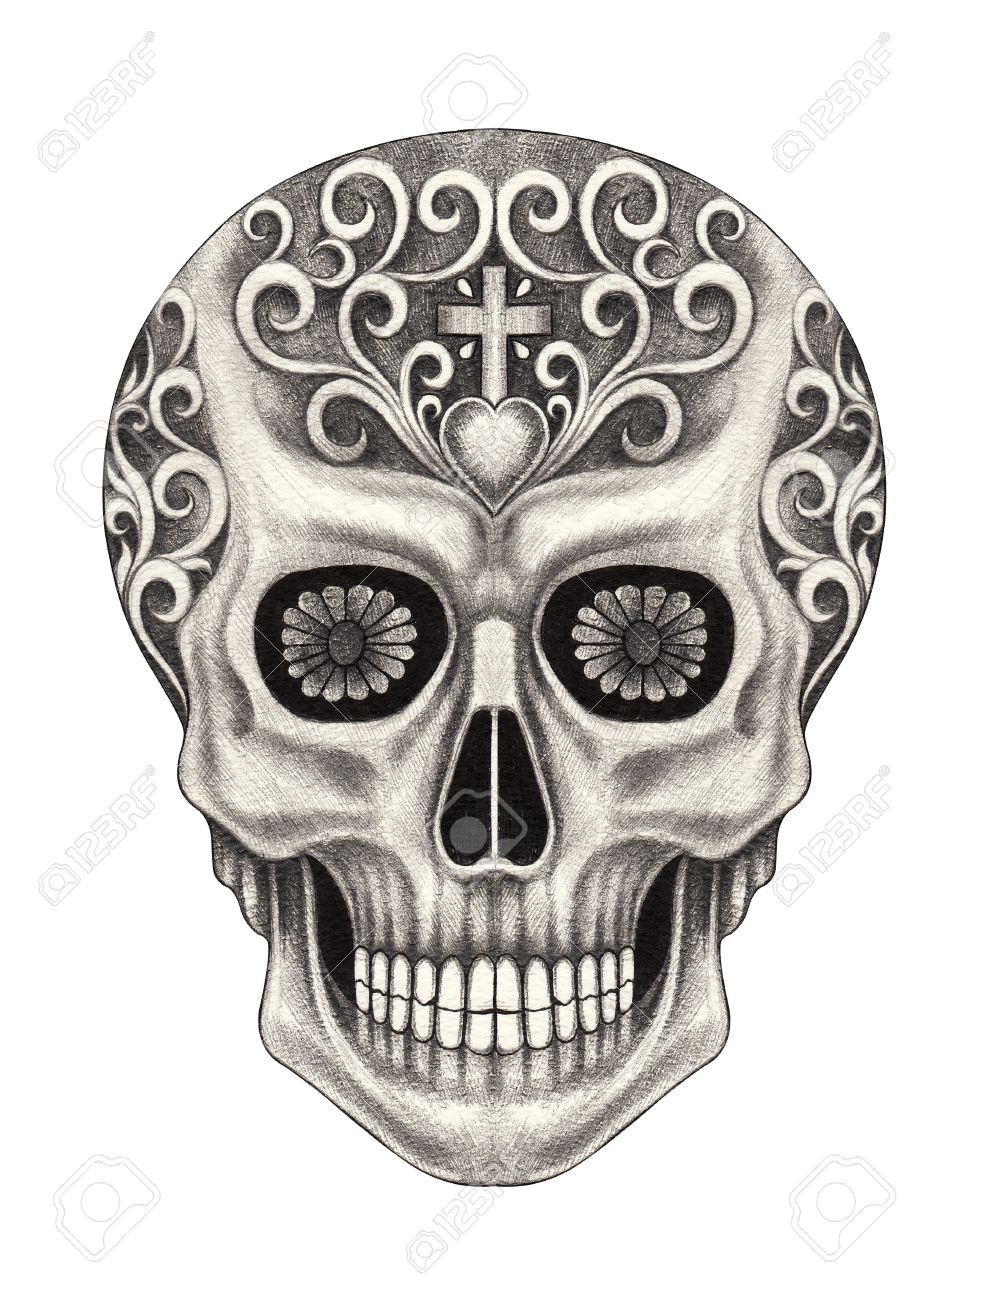 986x1300 Head Skull Art Day Of The Dead Festival. Hand Pencil Drawing